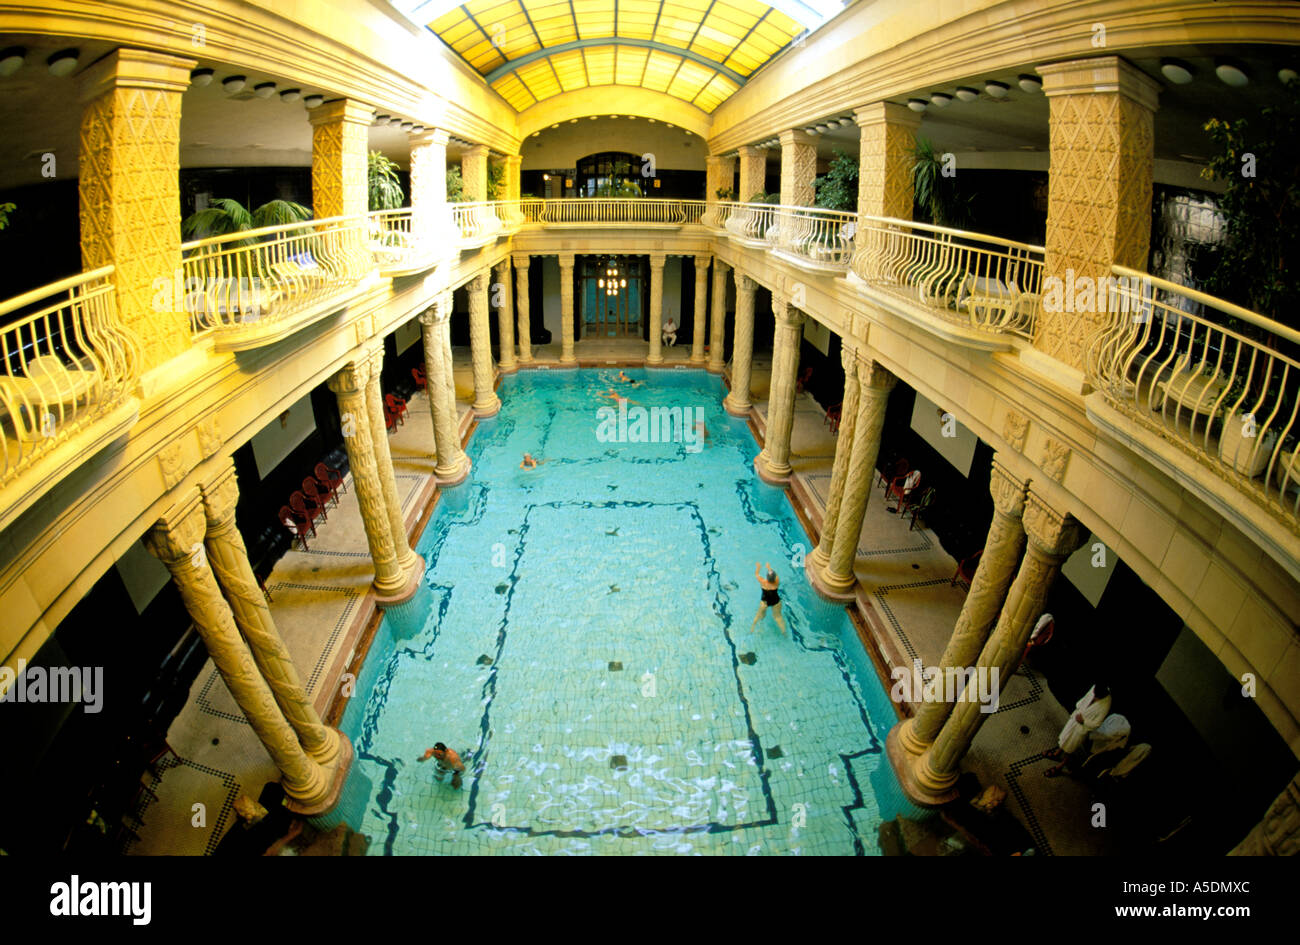 Budapest indoor swimming pool at Gellert Baths Stock Photo: 6446251 ...